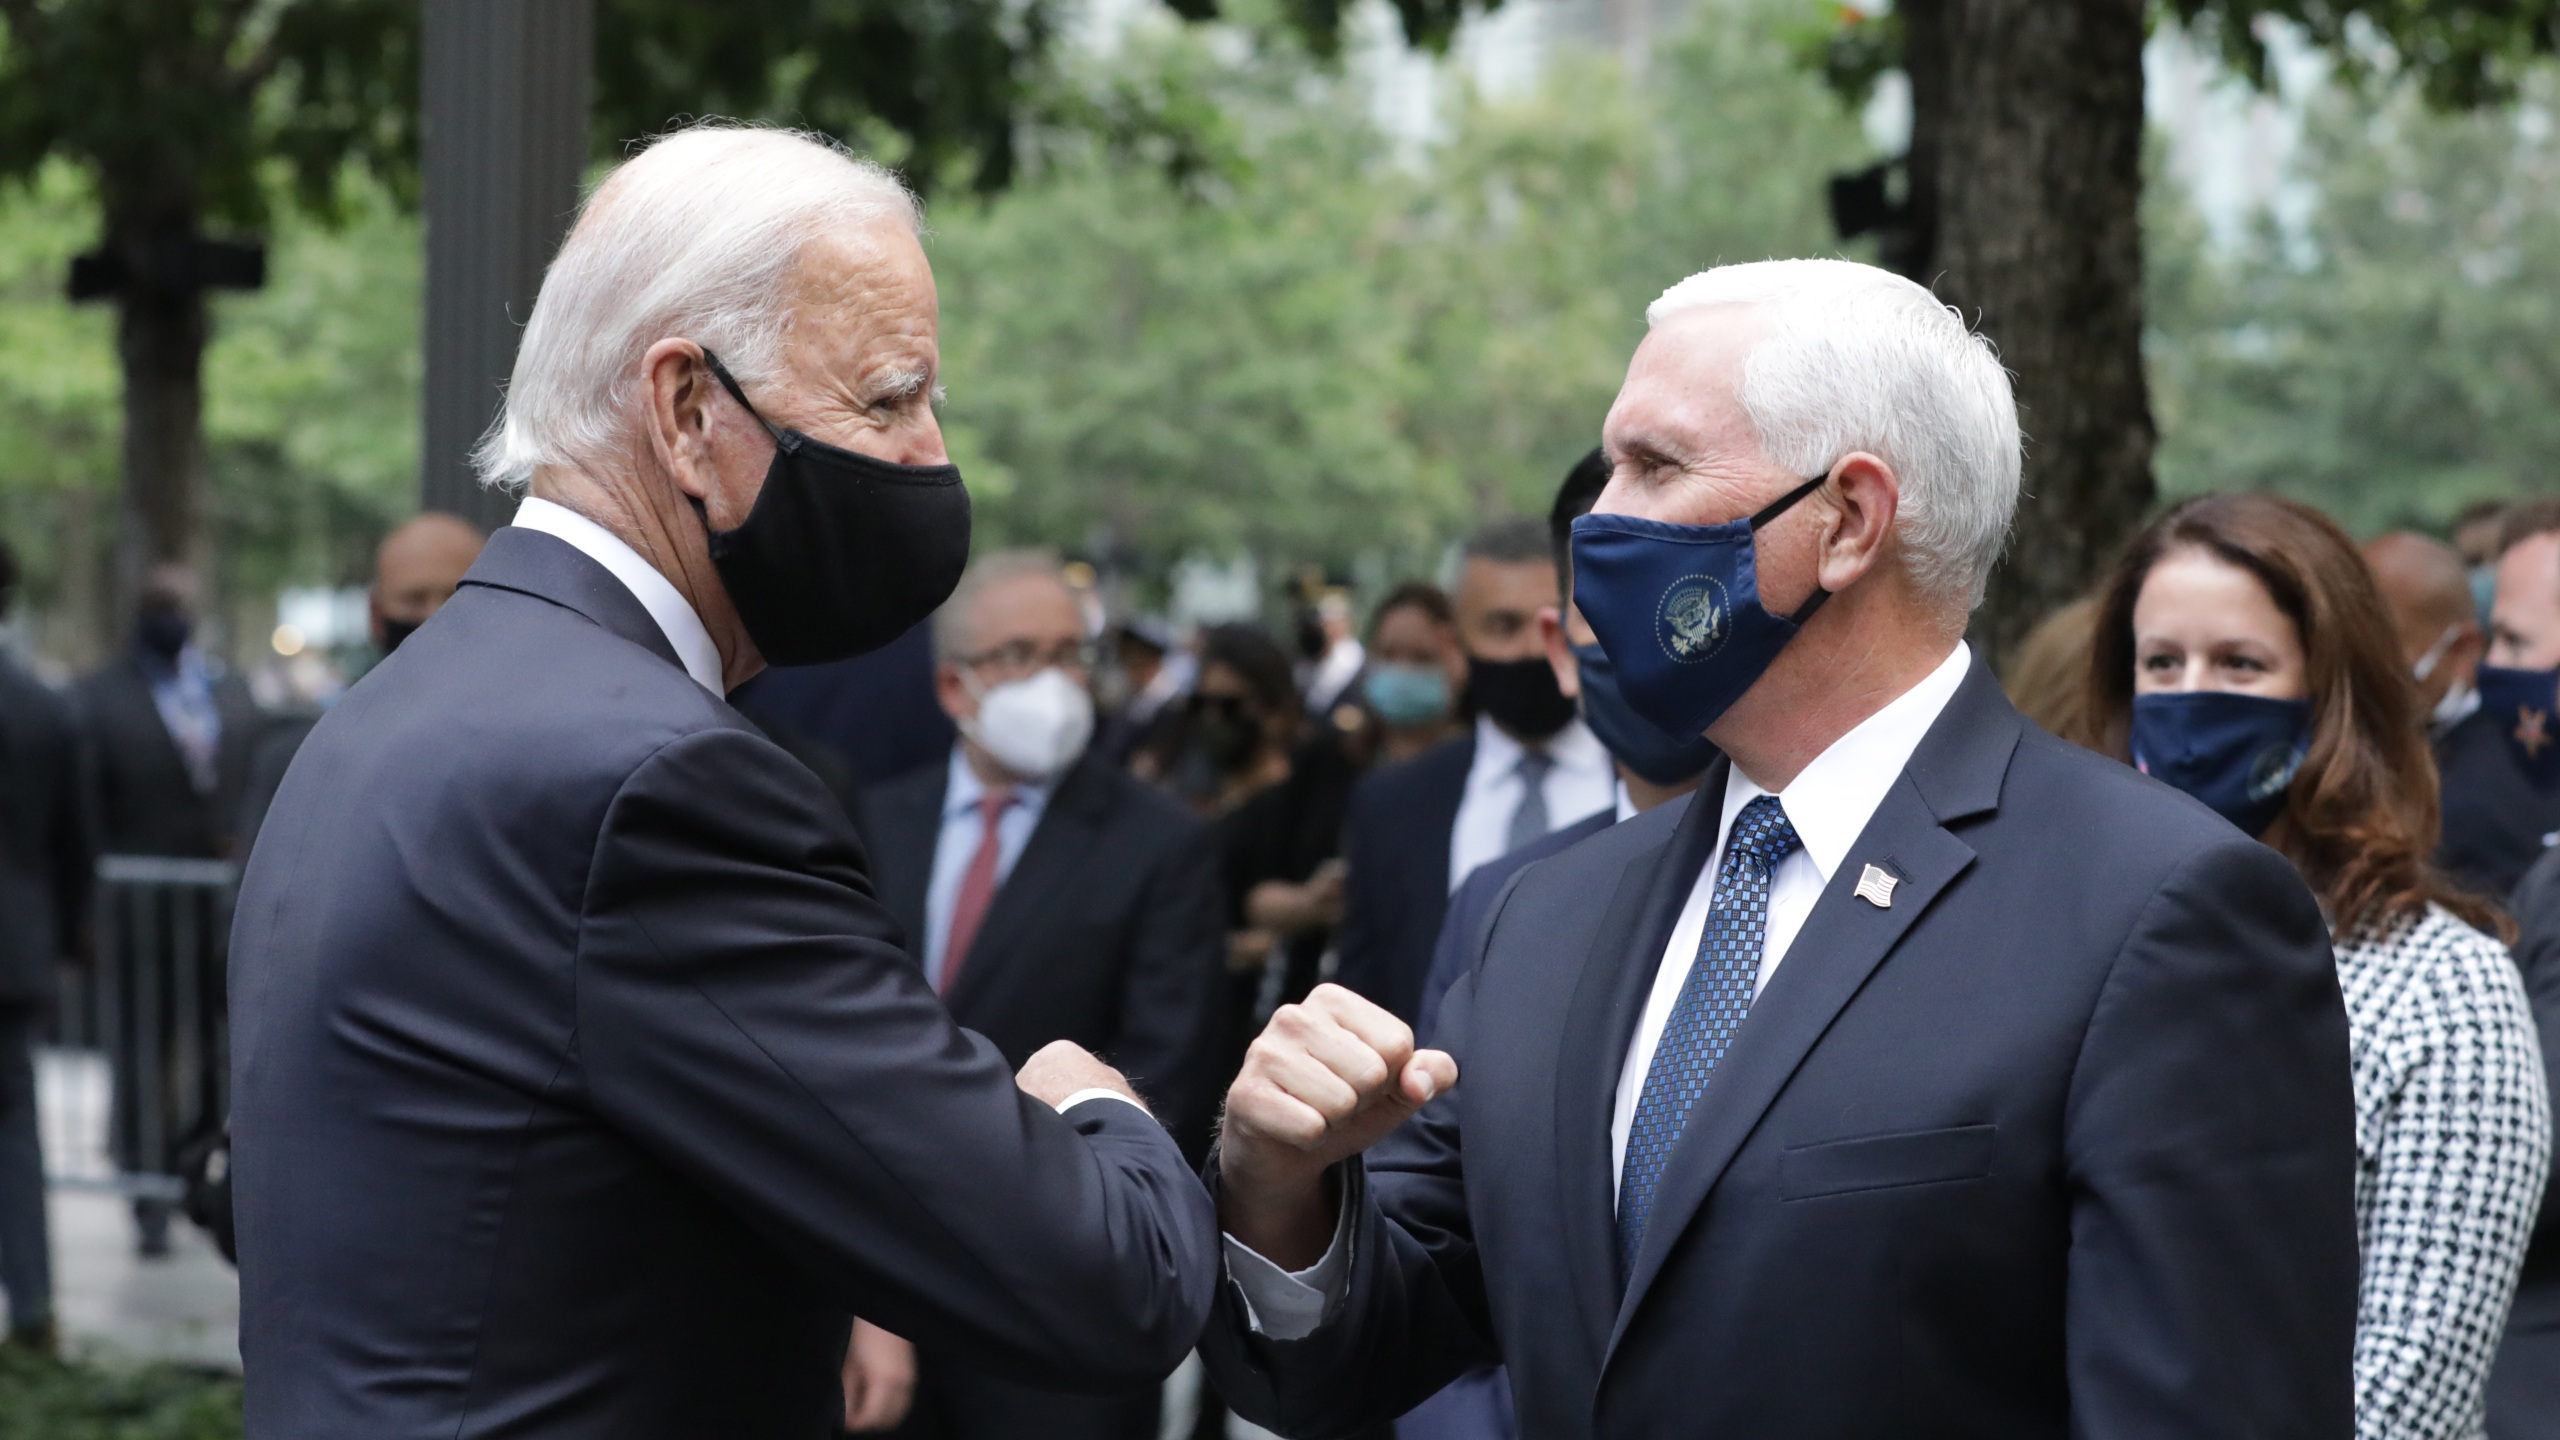 NEW YORK, NEW YORK - SEPTEMBER 11: Democratic presidential nominee Joe Biden (L) and U.S. Vice President Mike Pence (R) greet each other during a 9/11 memorial service at the National September 11 Memorial and Museum on September 11, 2020 in New York City. The ceremony to remember those who were killed in the terror attacks 19 years ago will be altered this year in order to adhere to safety precautions around COVID-19 transmission. (Photo by Amr Alfiky - Pool/Getty Images)